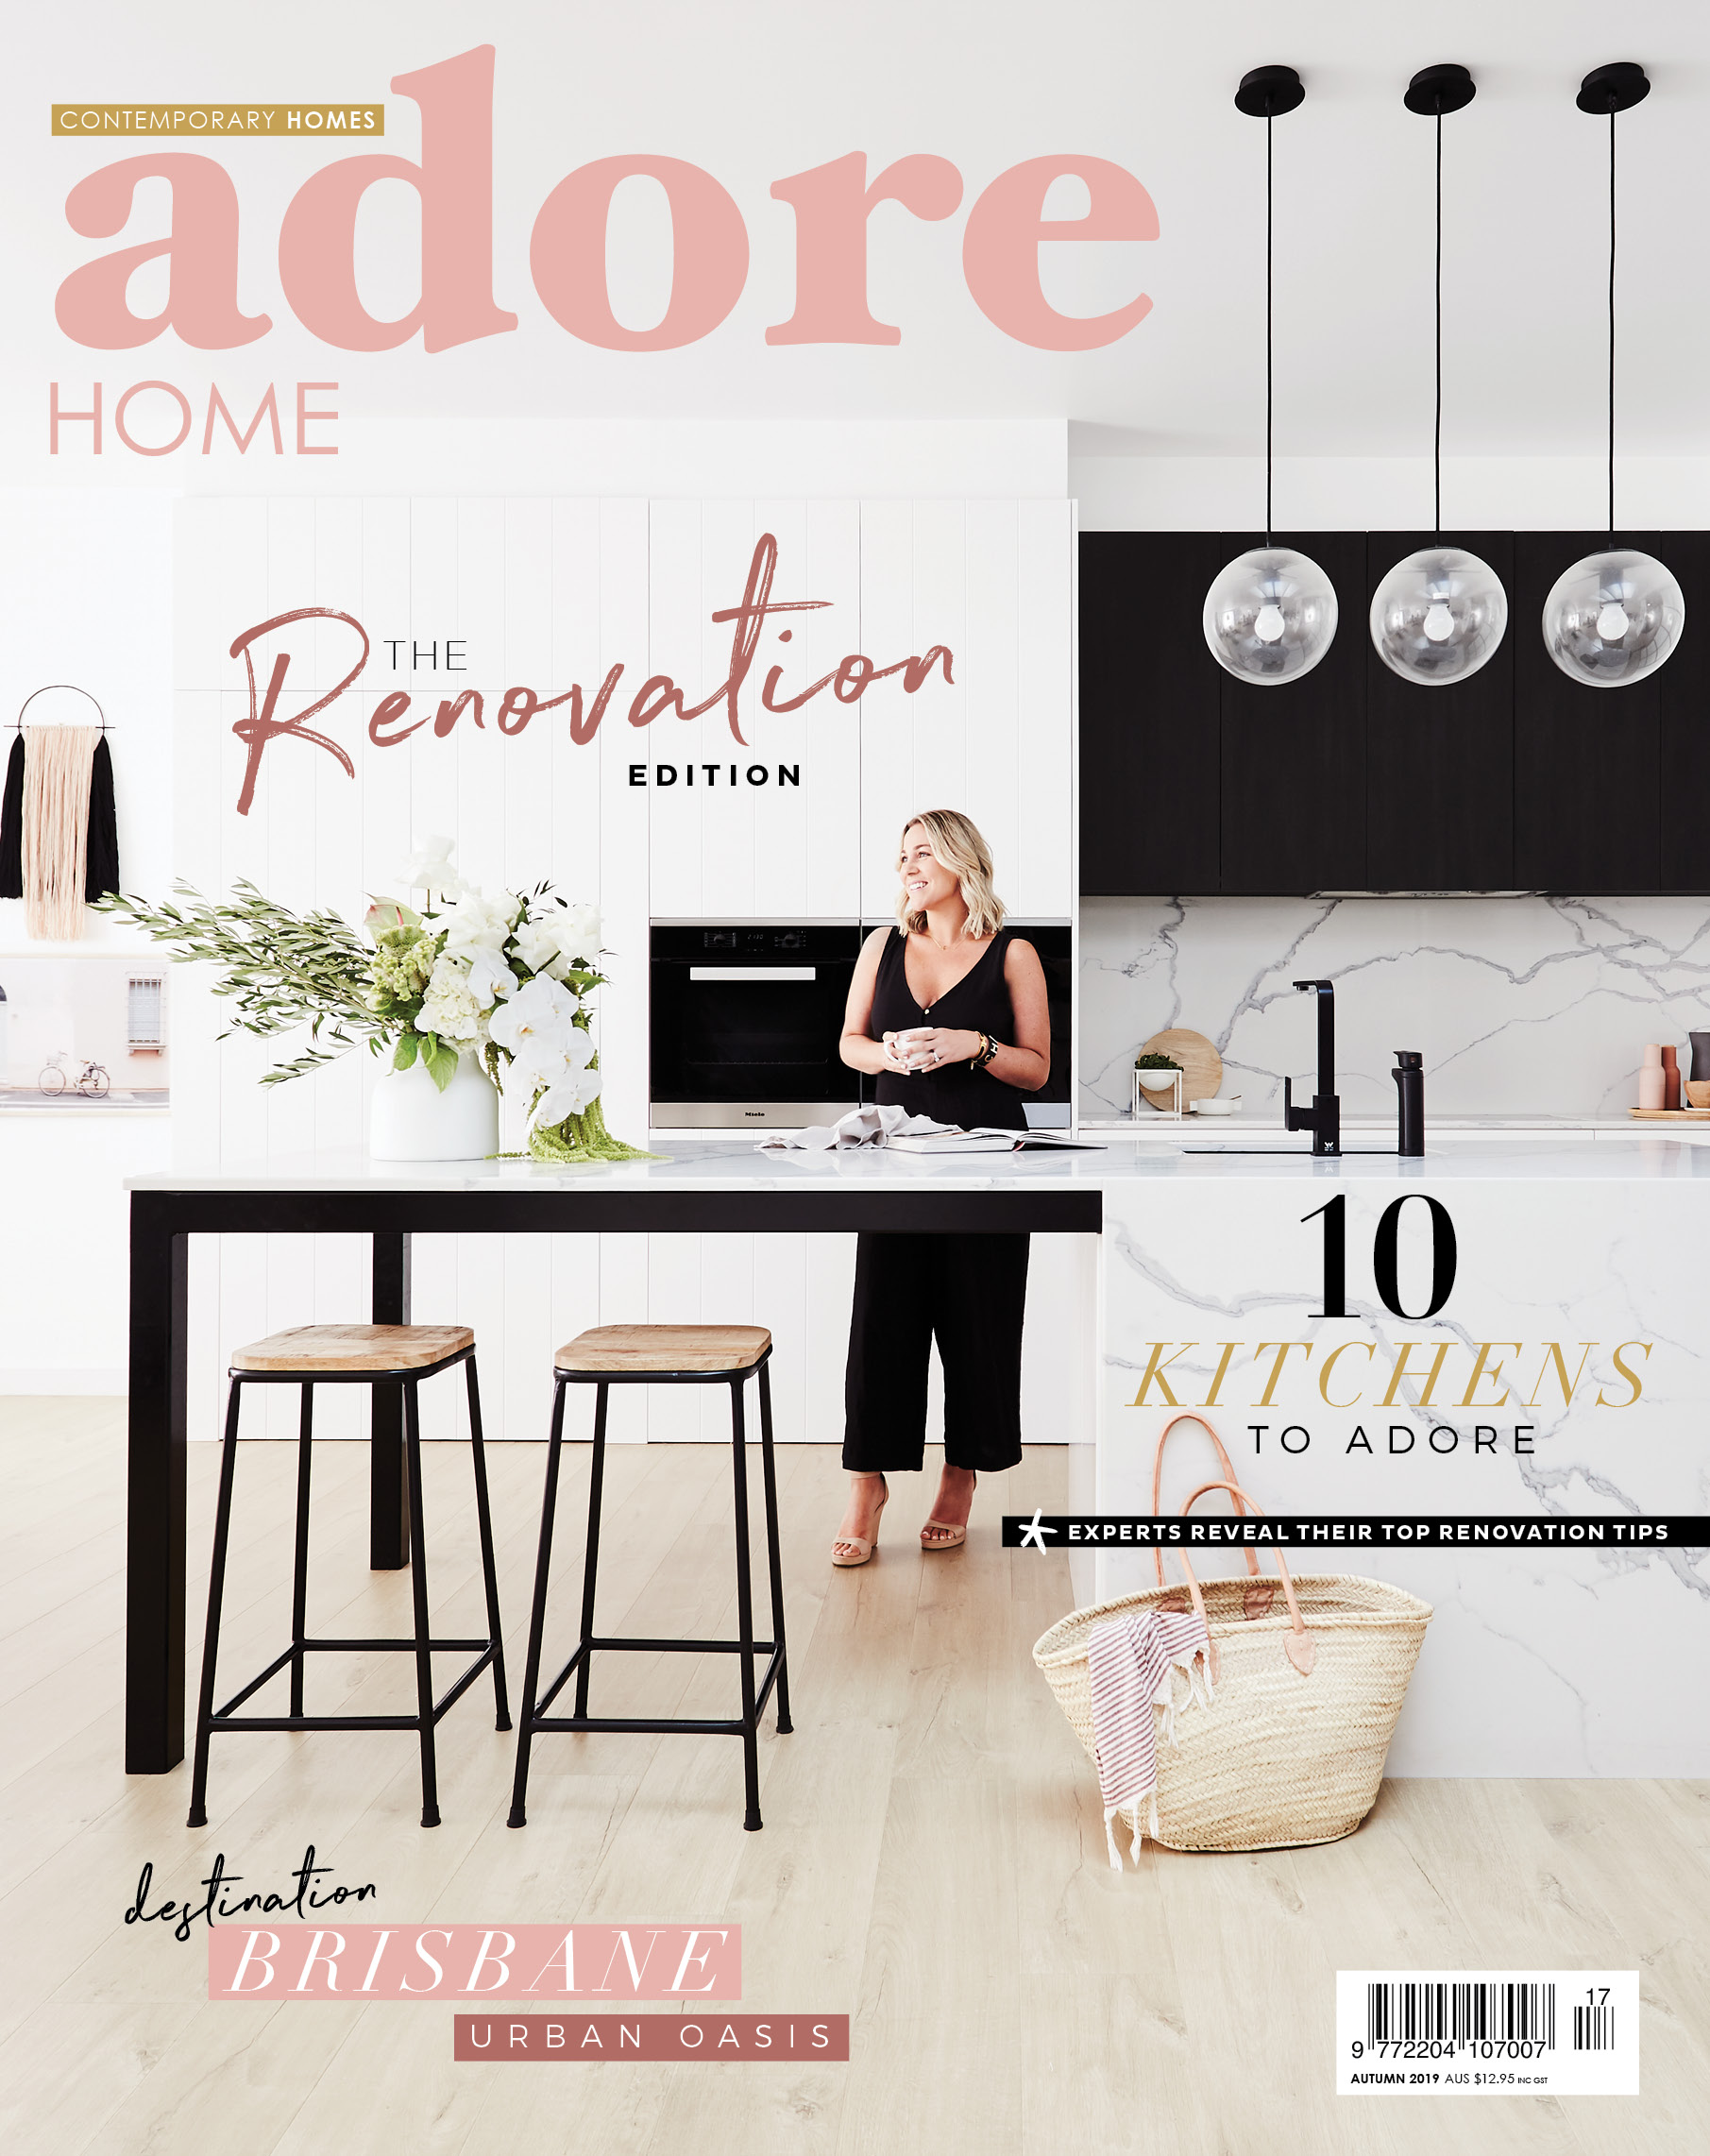 ADORE_AUTUMN_front_cover.jpg